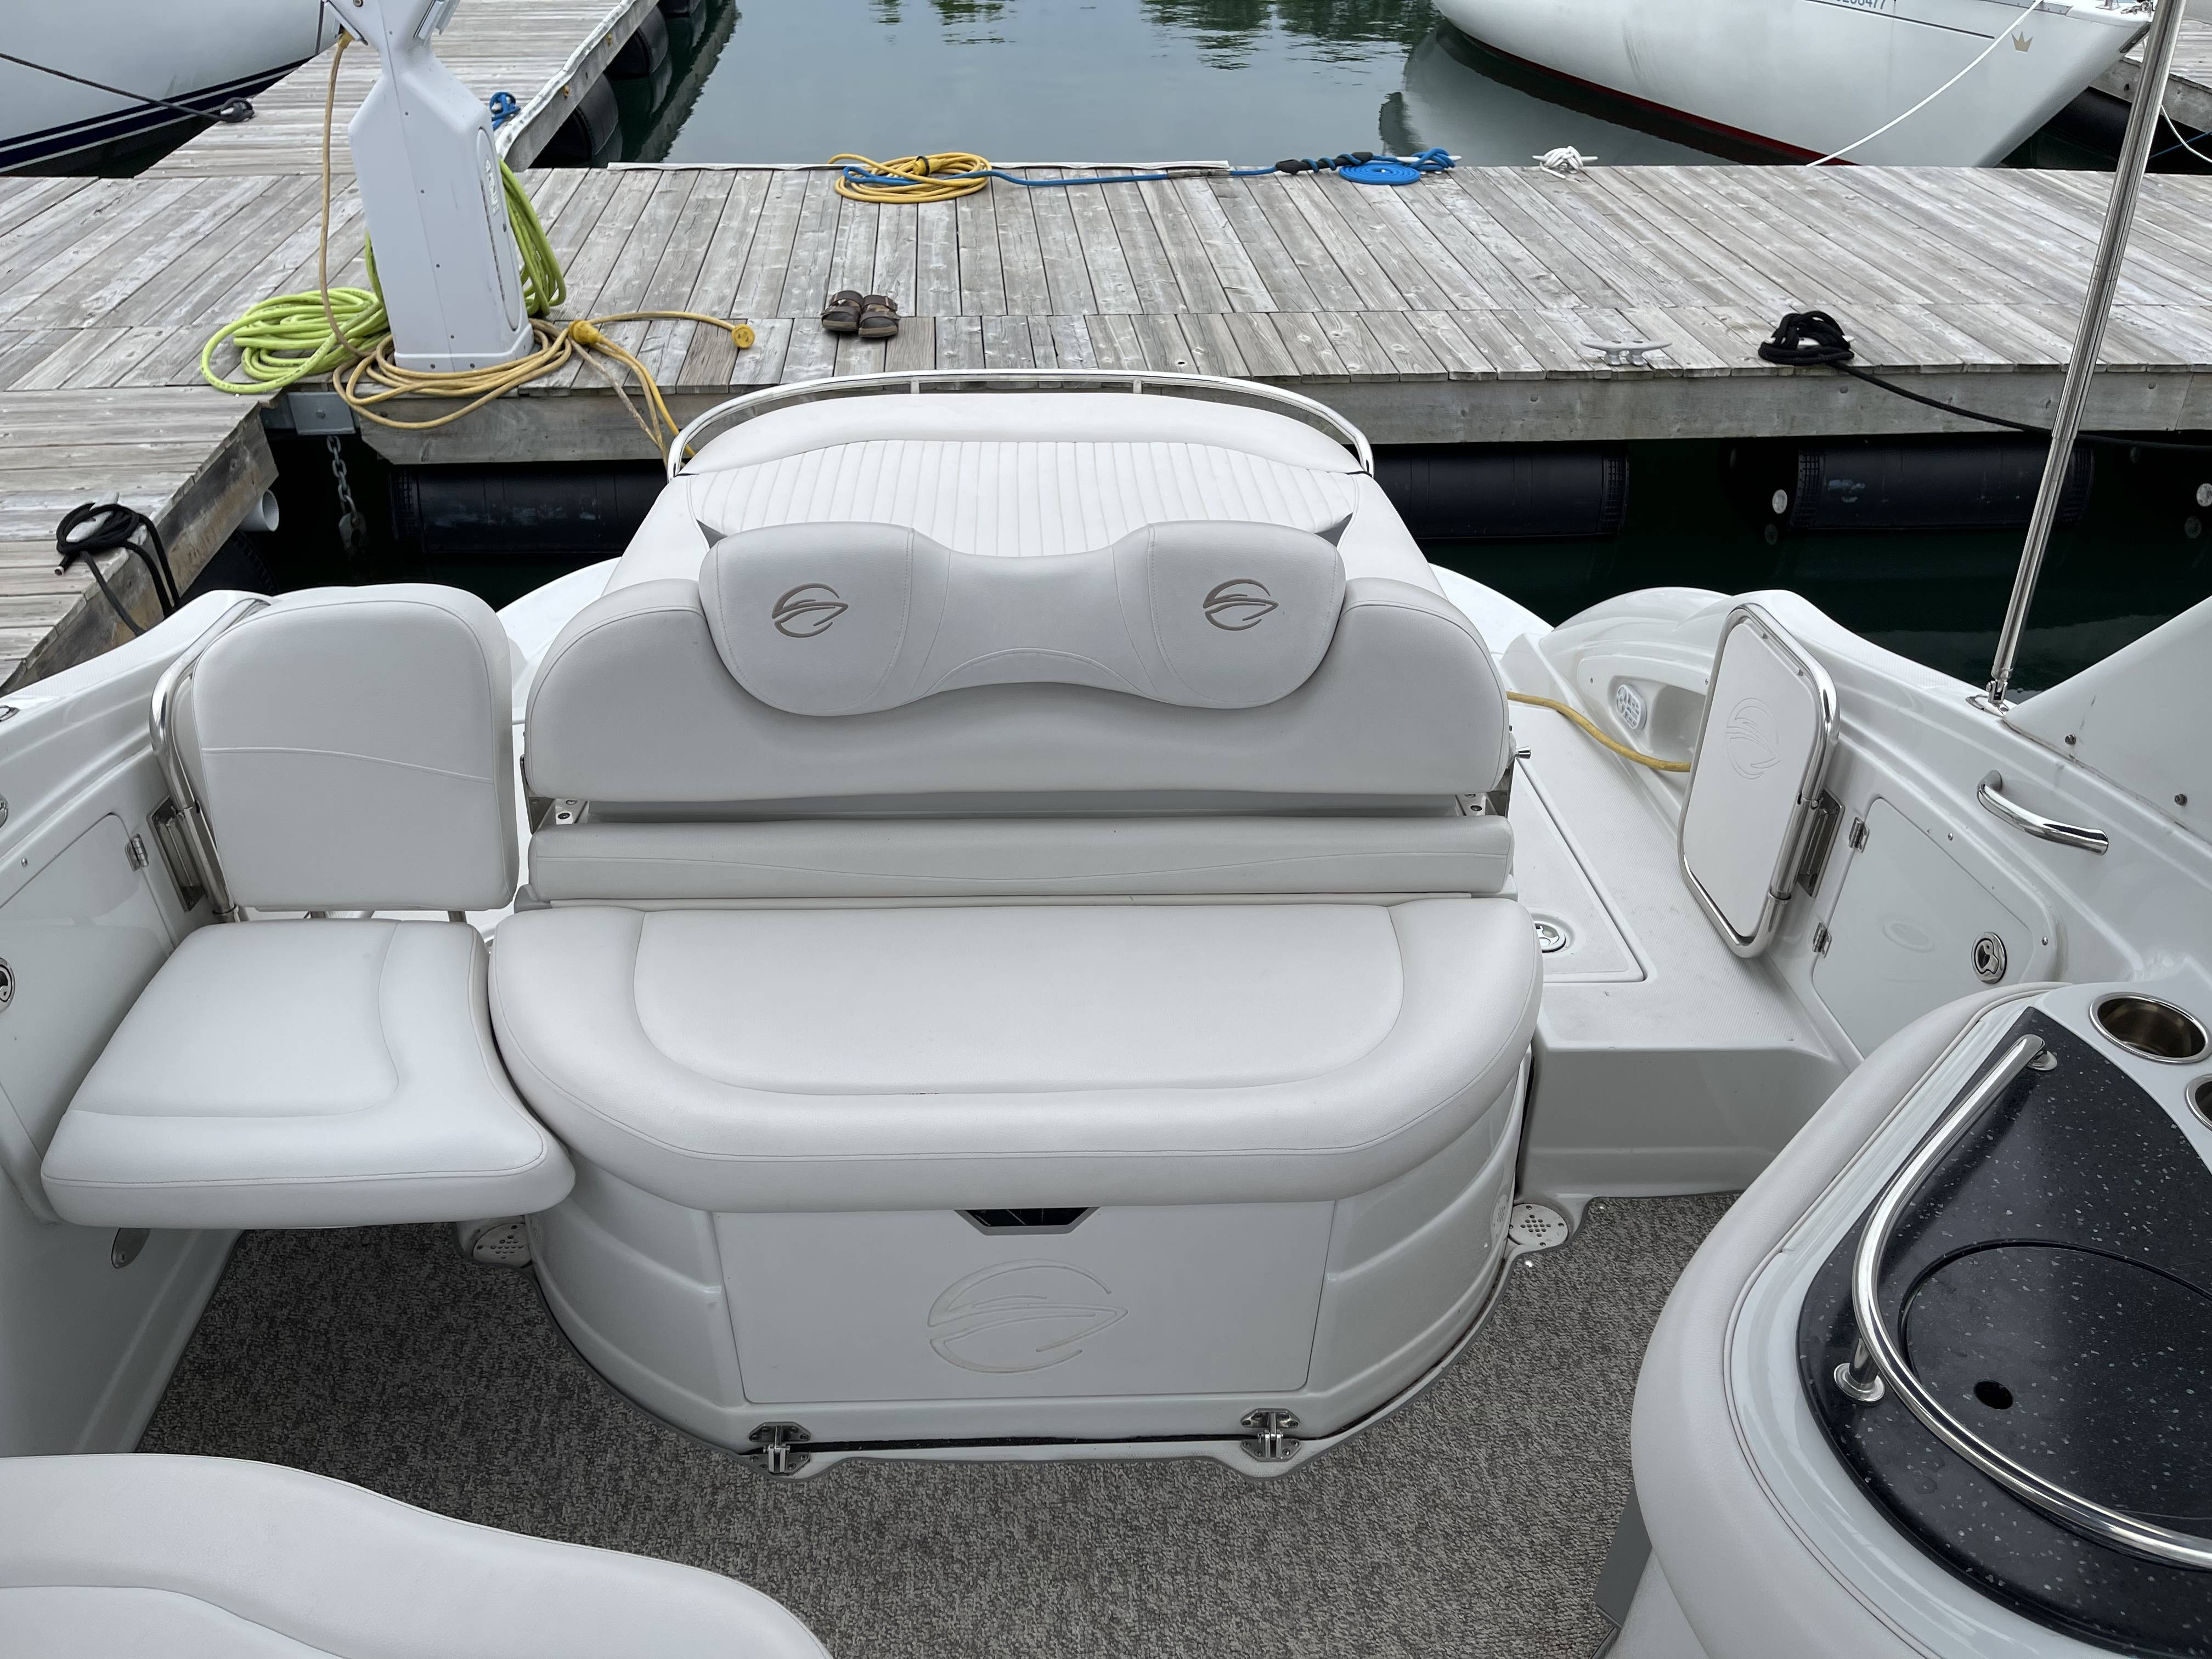 2011 Crownline boat for sale, model of the boat is 320 LS & Image # 26 of 55